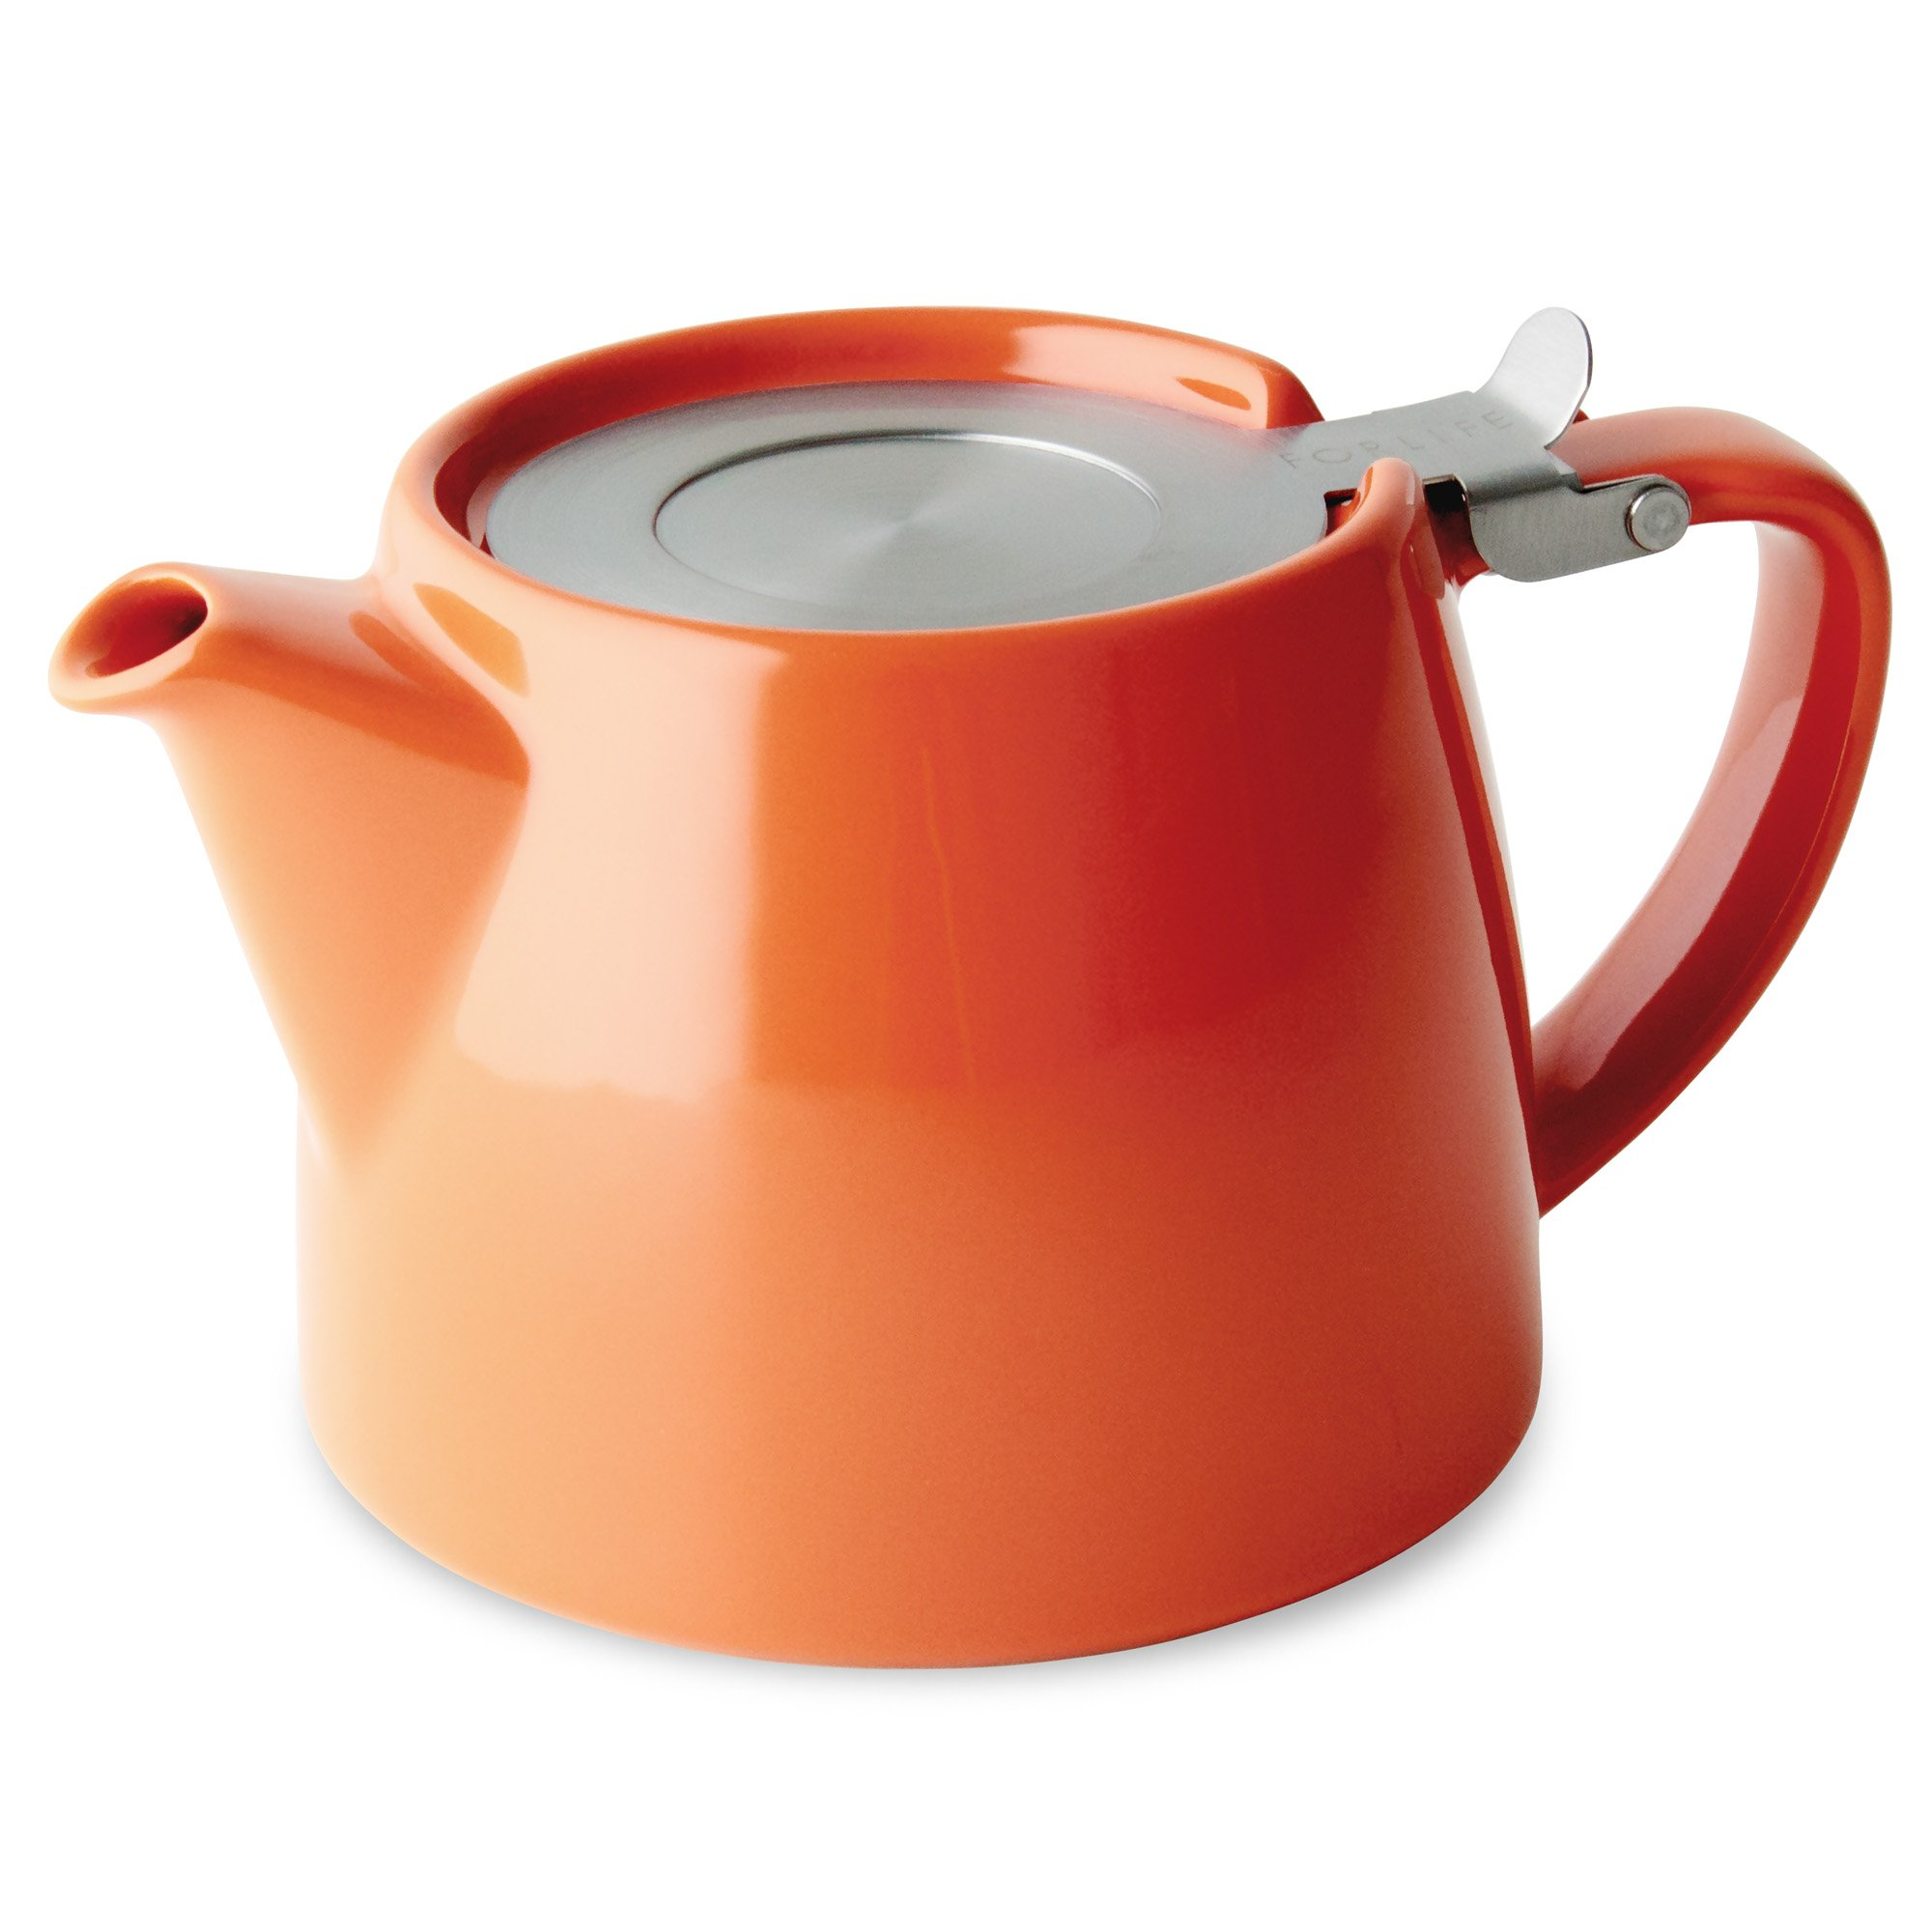 FORLIFE Stump Teapot with SLS Lid and Infuser, 18-Ounce, Carrot by FORLIFE